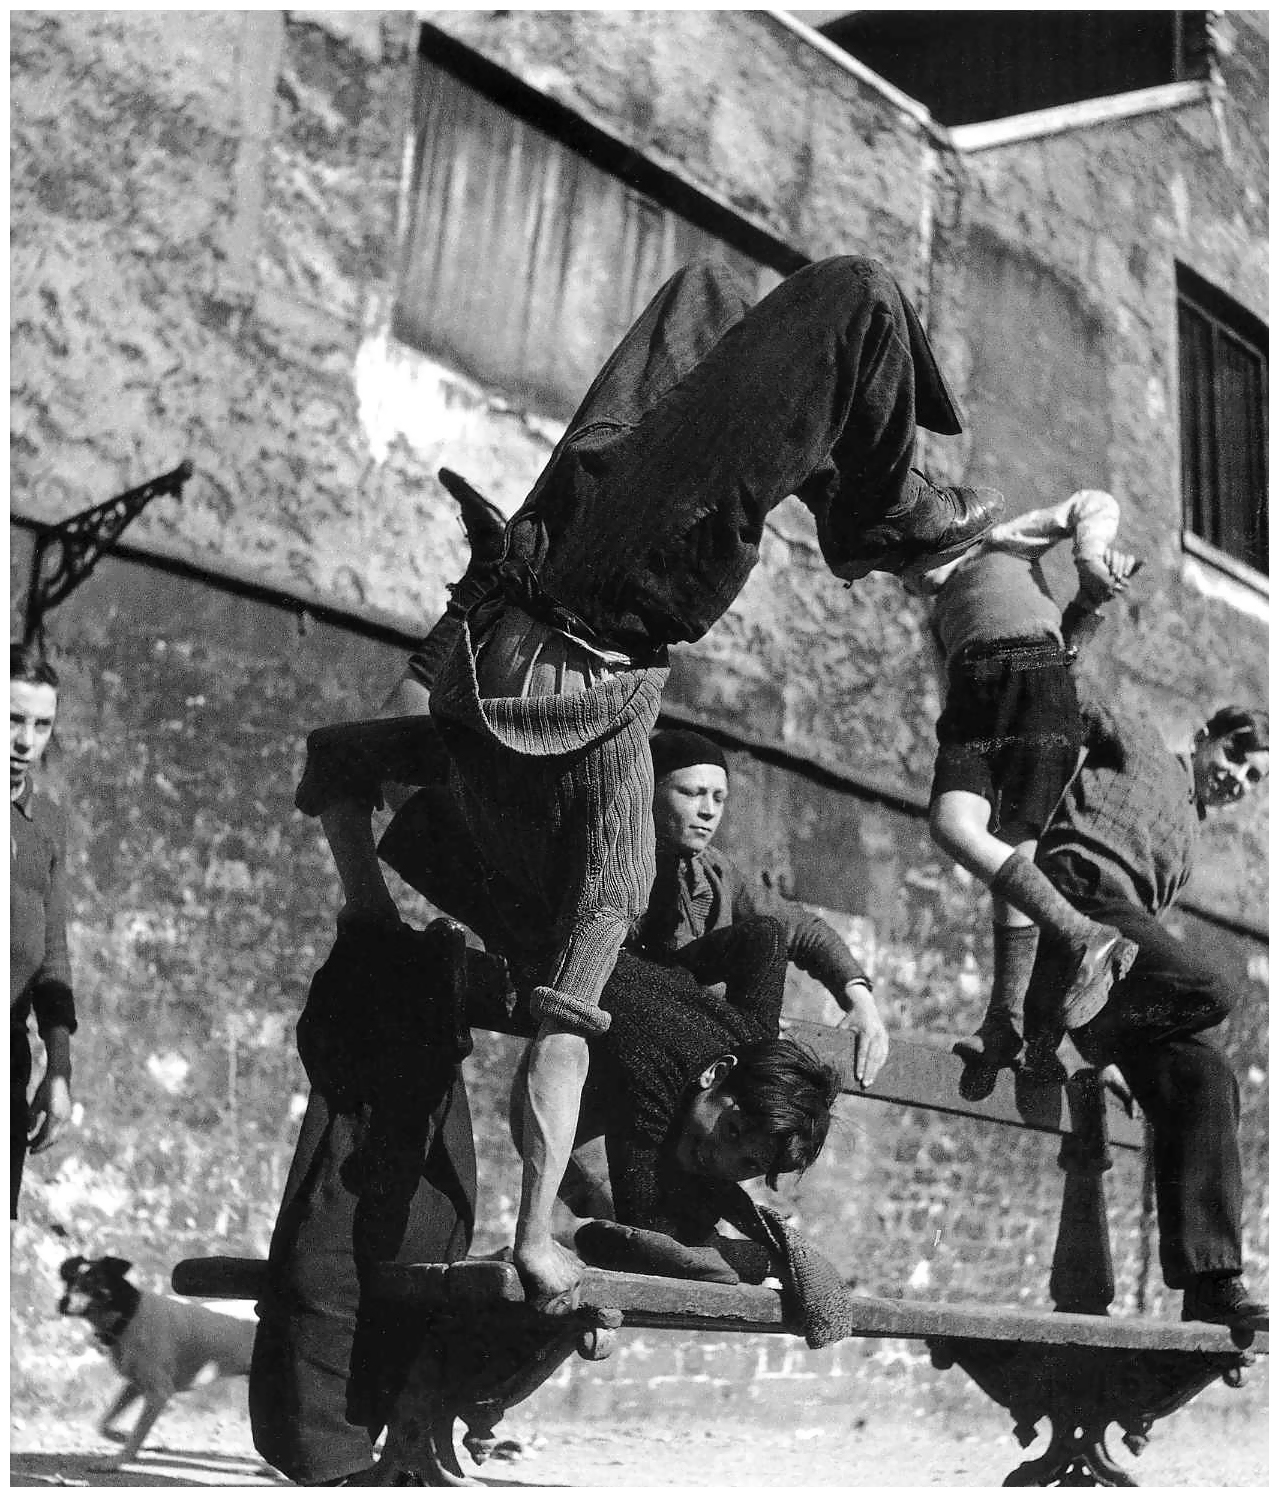 robert-doisneau-robert-doisneau-acrobaties-sur-un-banc-paris-1950s    Robert Doisneau Photography Children